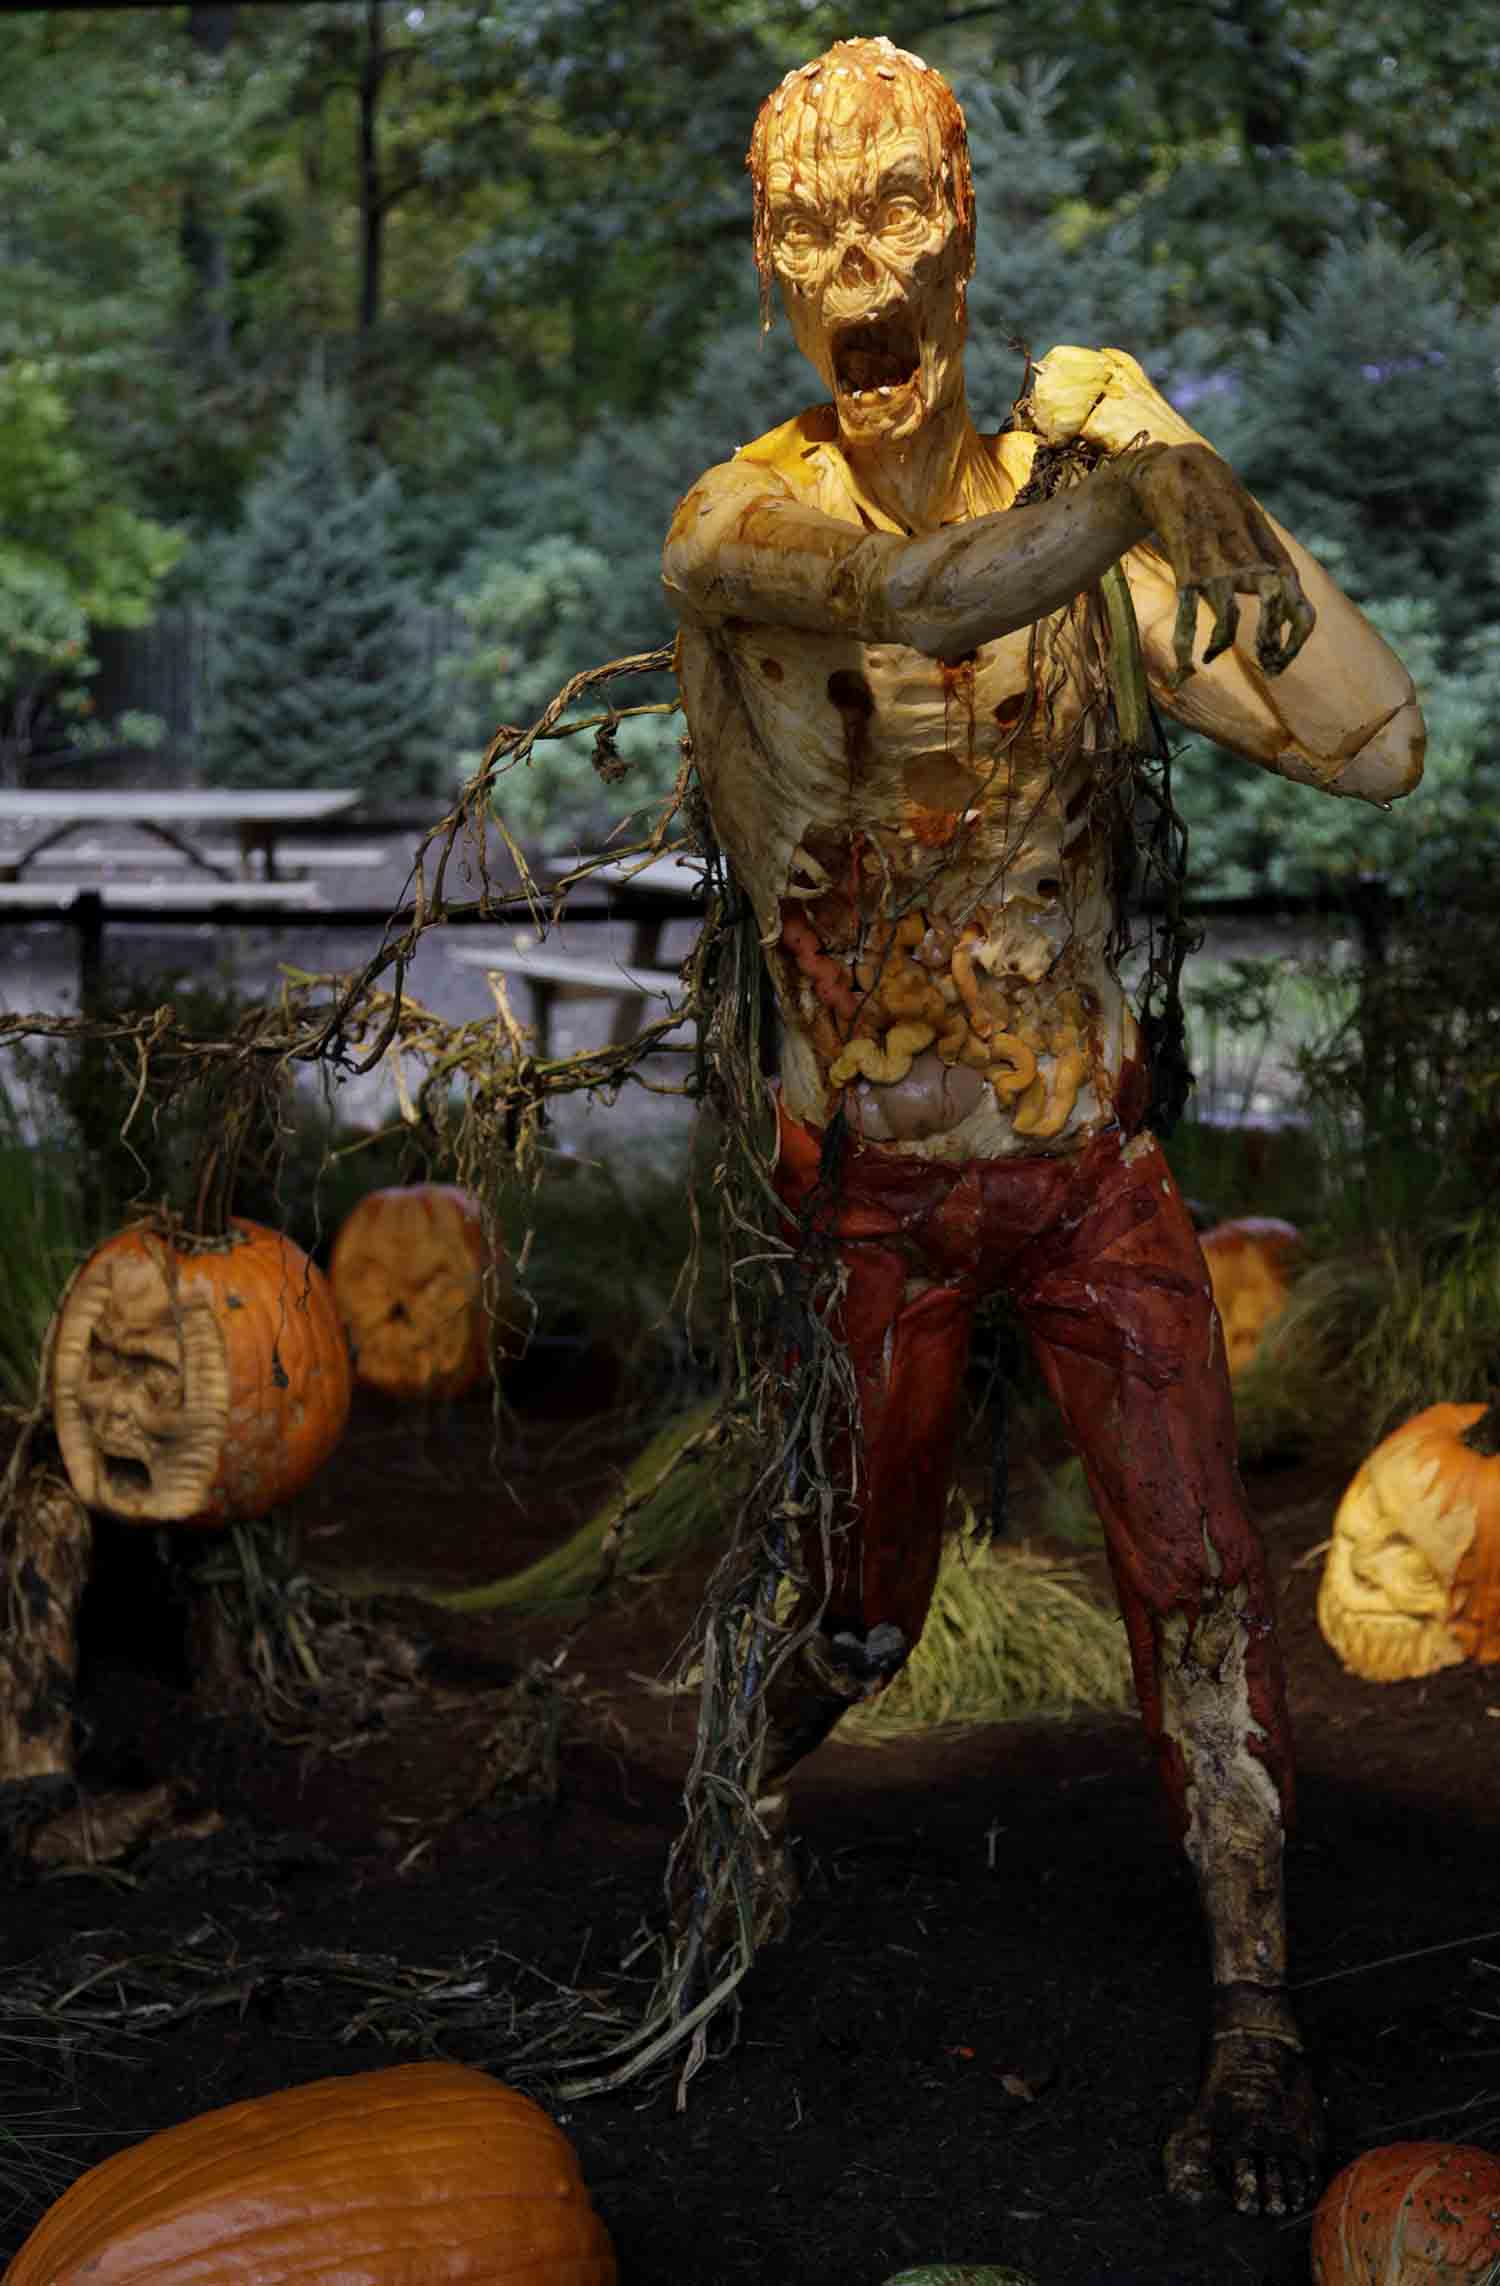 A zombie carved from giant pumpkins is displayed with other pumpkins at the New York Botanical Gardens in New York, Tuesday, Oct. 23, 2012. The pumpkins will be on display through Oct. 31, 2012. (AP Photo/Seth Wenig)